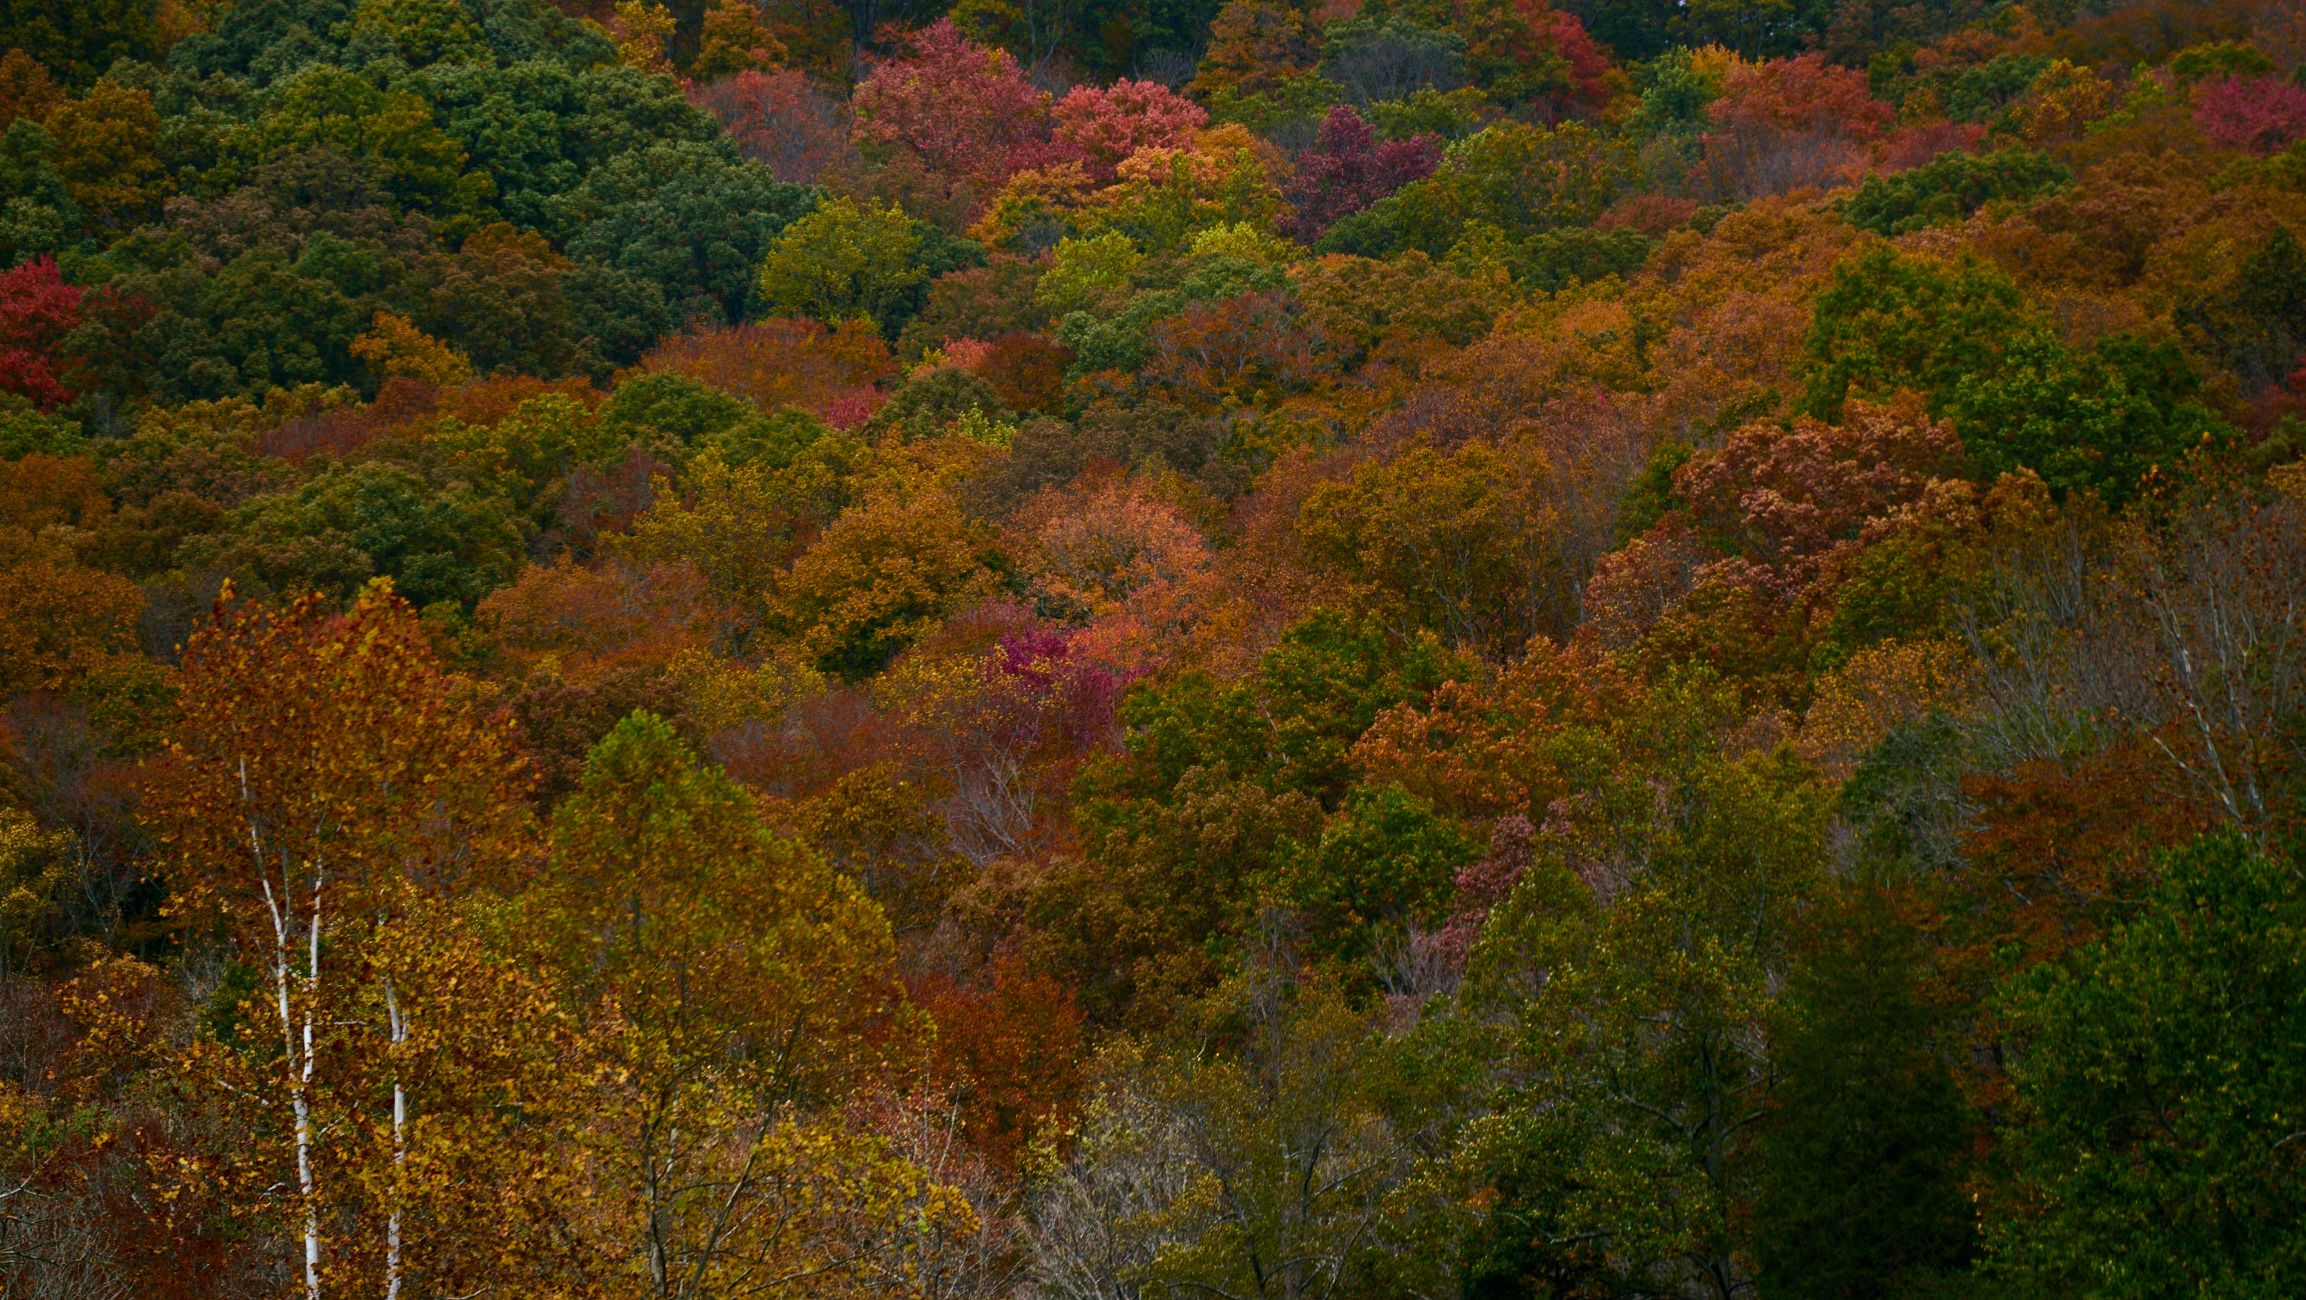 Autumn scene of forest showing red, orange, and yellow fall colors